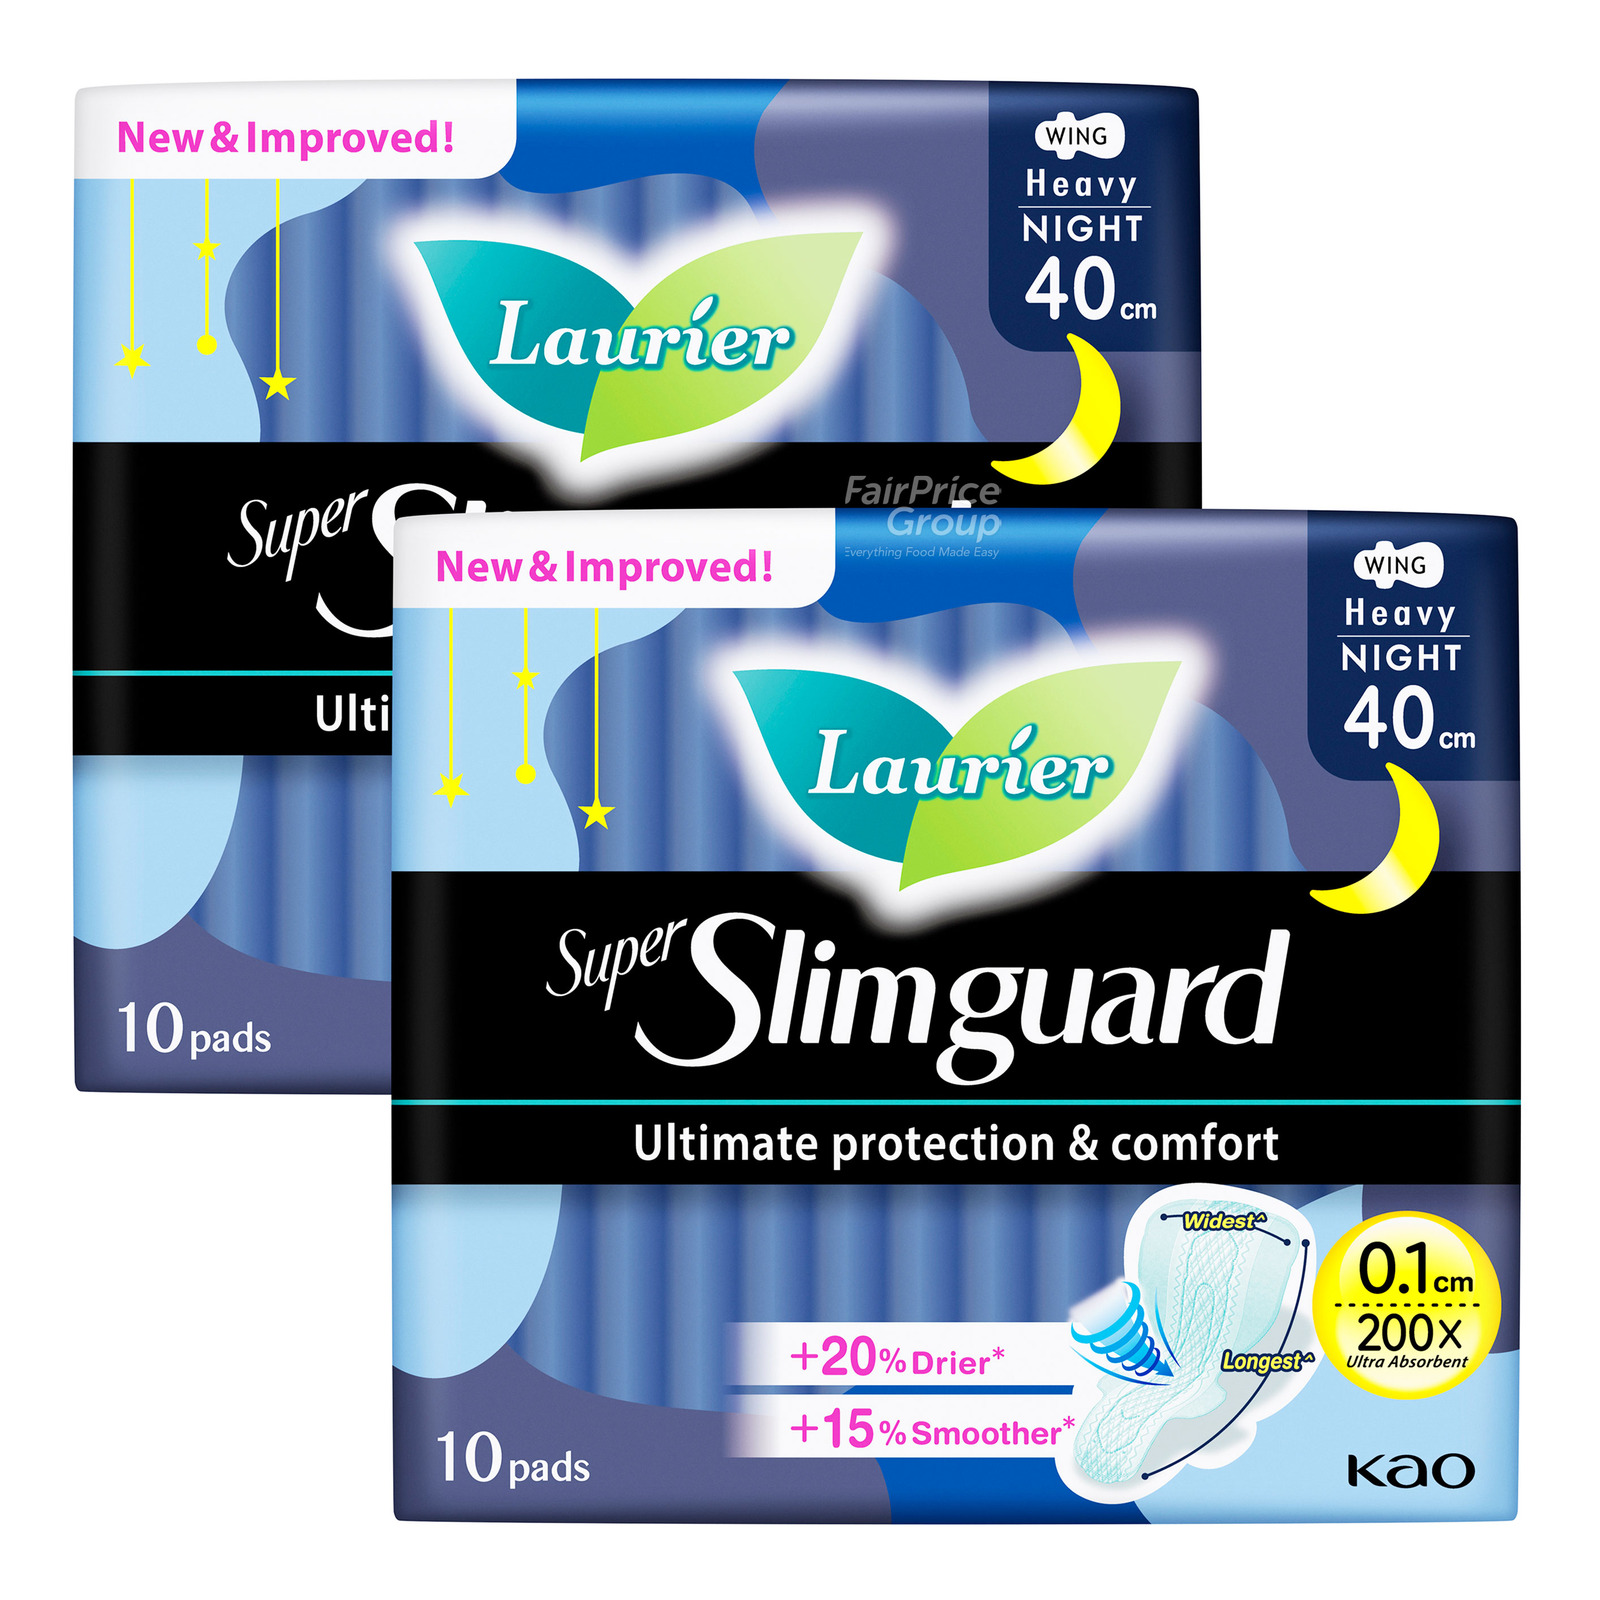 Laurier Super Slimguard Night Wings Pads-Heavy (40cm)